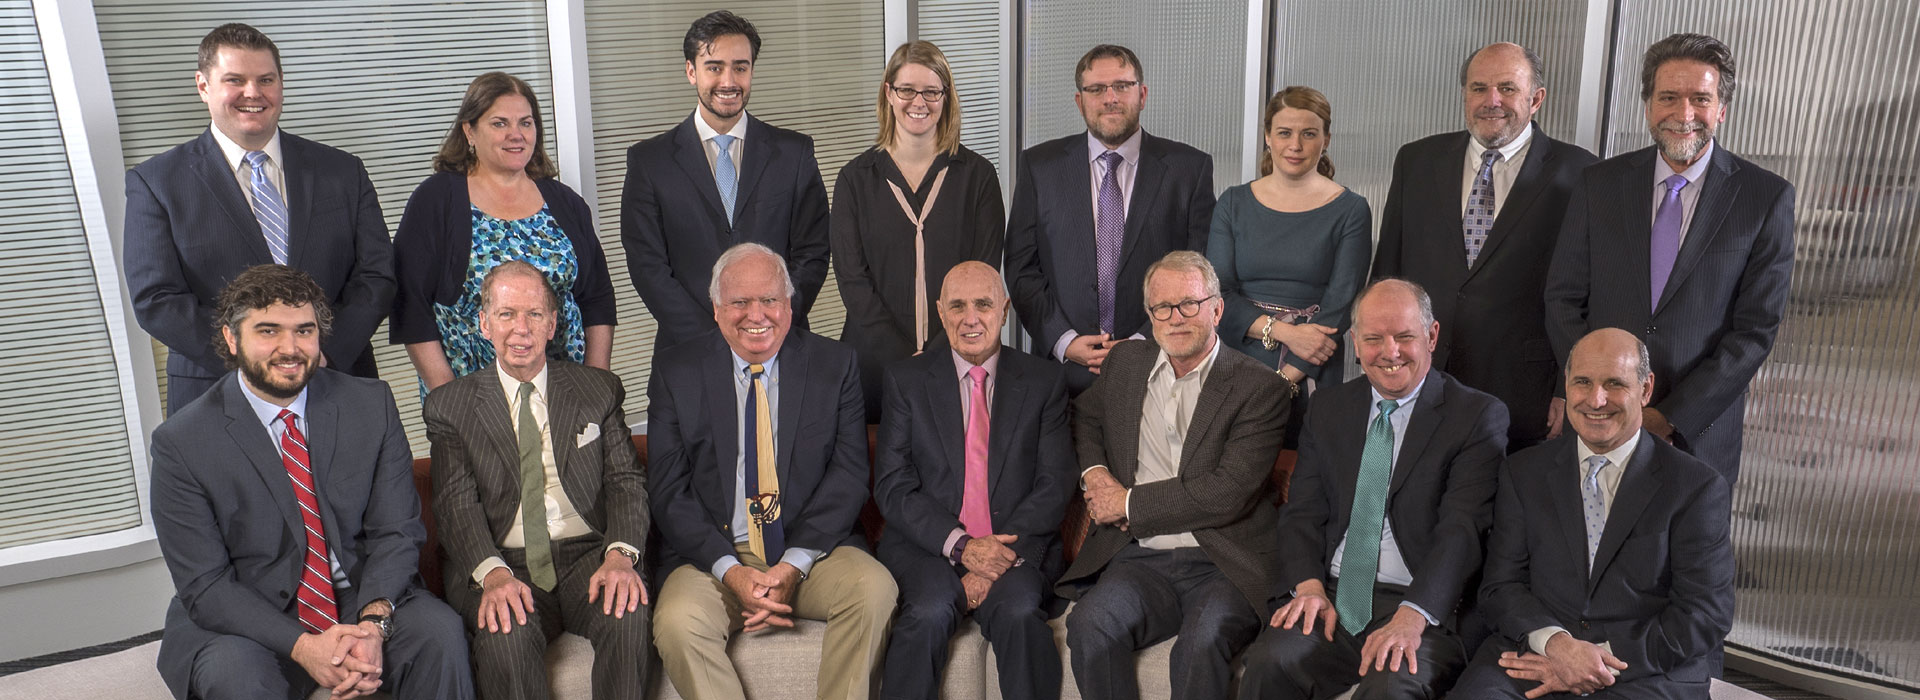 GRGB Firm Picture